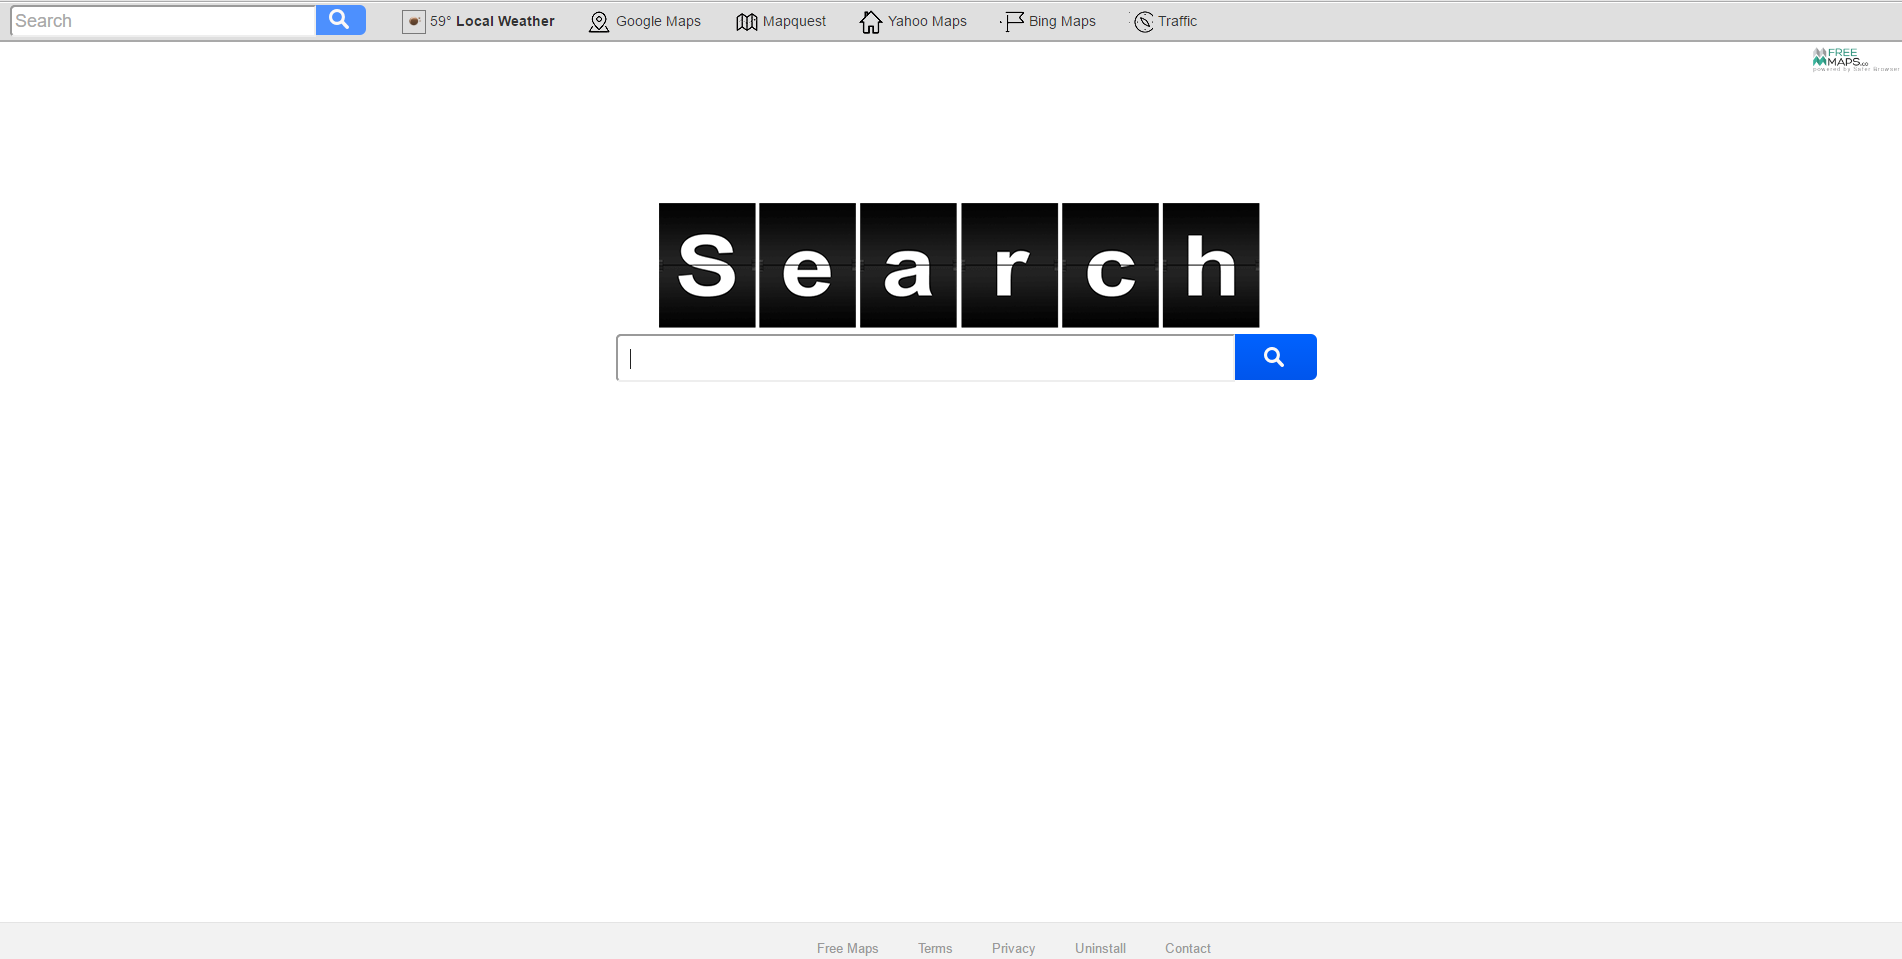 search.searchfreem.com hijacker